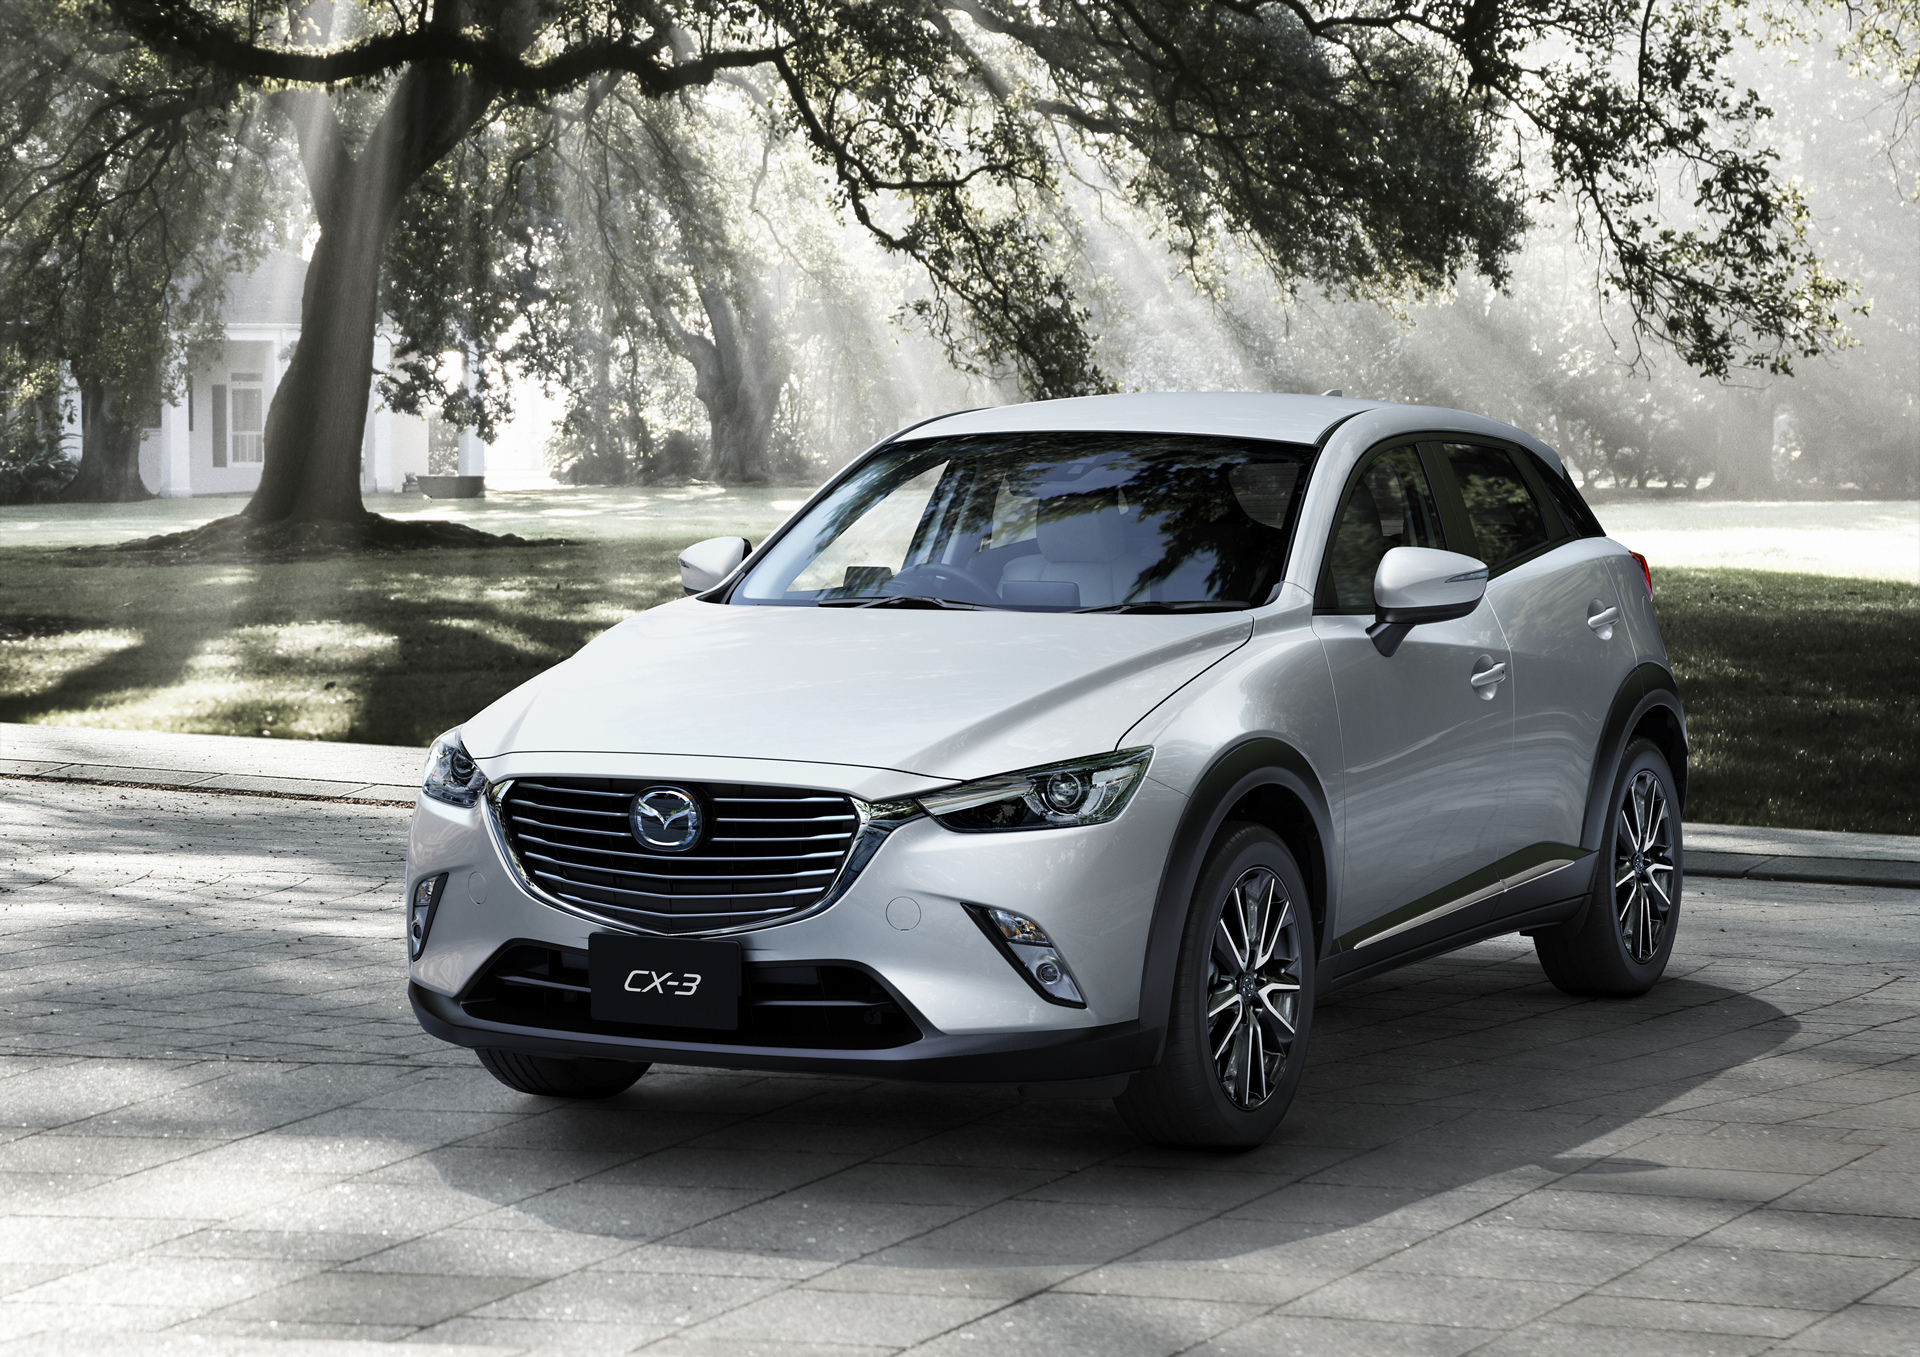 2016 Mazda Cx 3 Review Carrrs Auto Portal